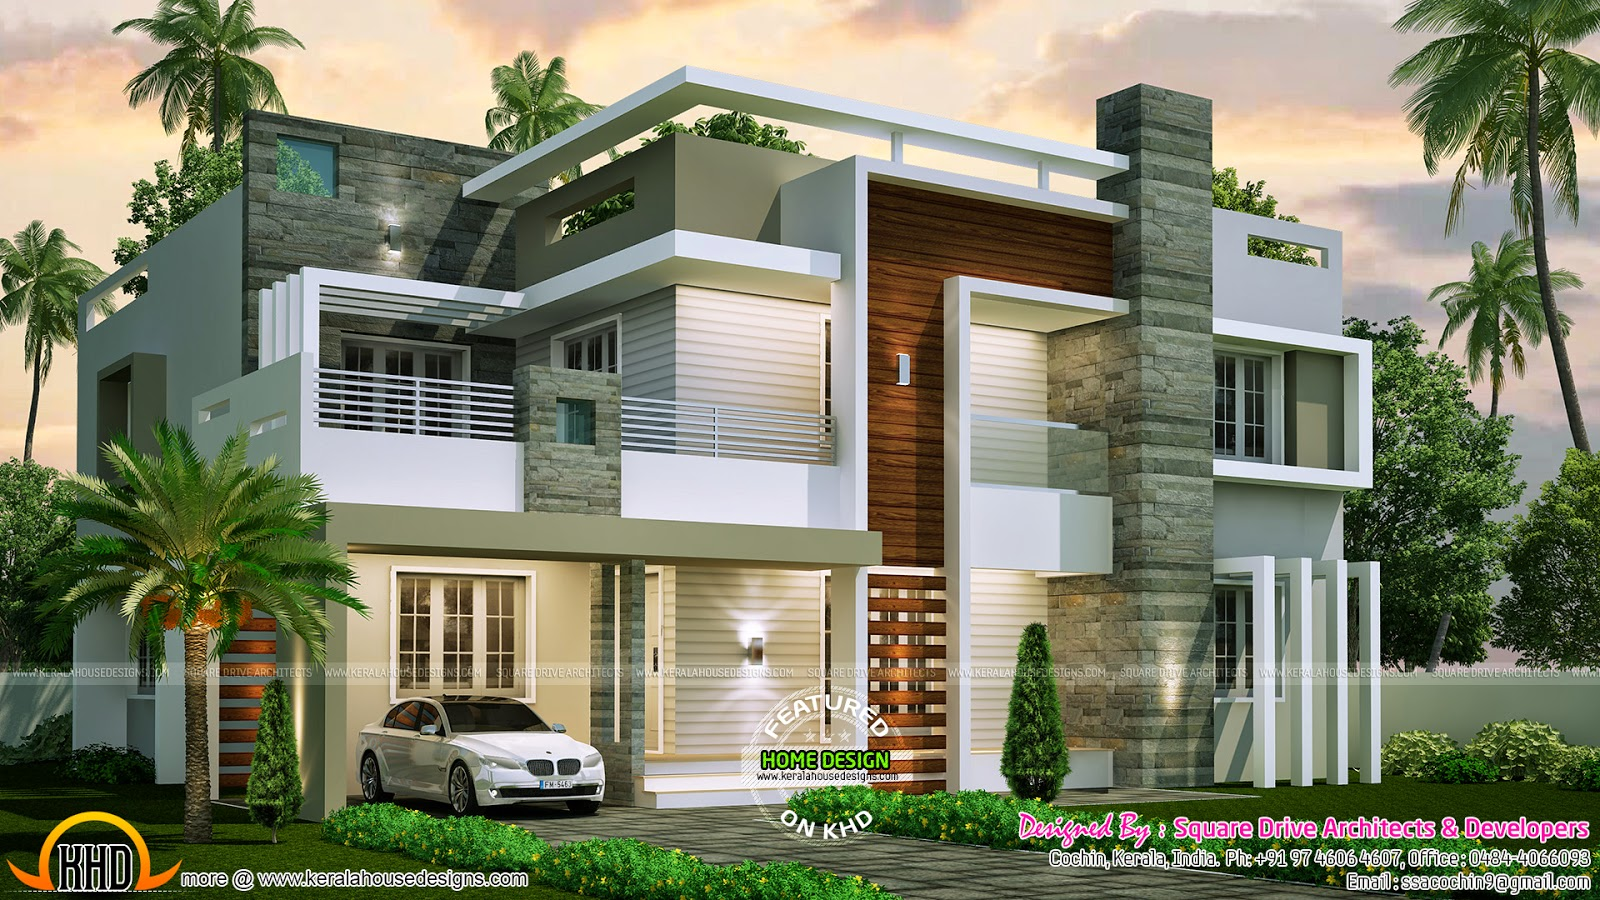 4 bedroom contemporary home design kerala home design for Best modern house plans